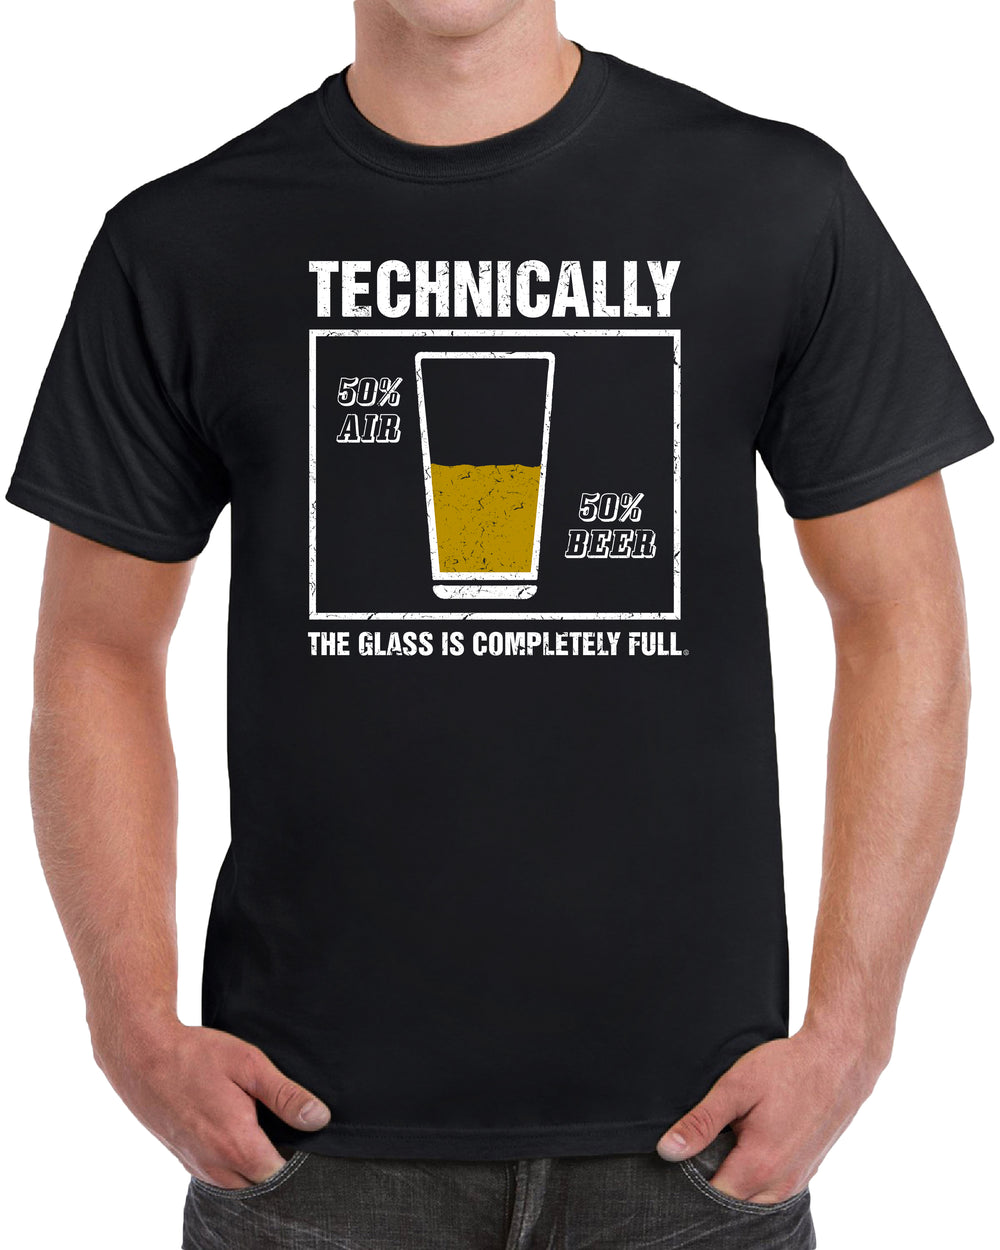 Technically The Glass is Completely Full - Distressed Print